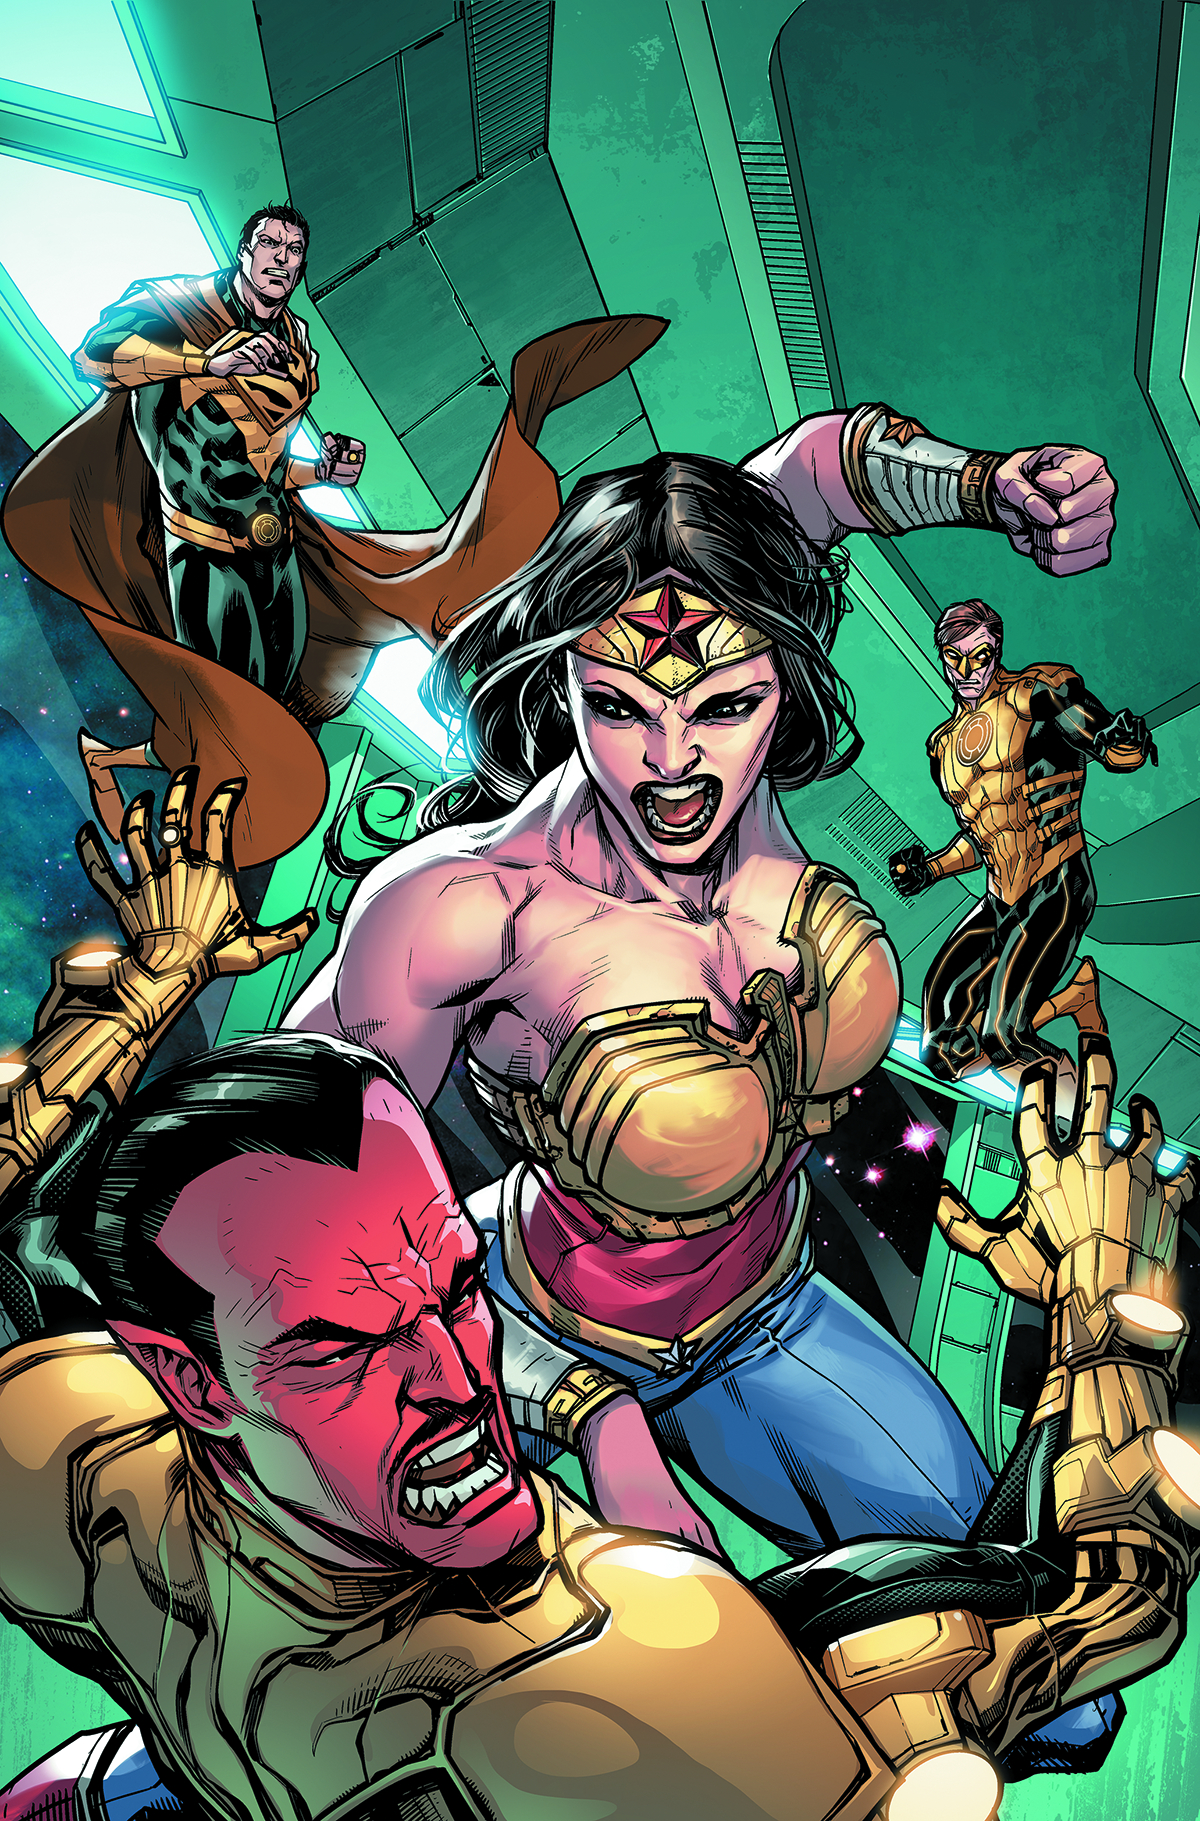 INJUSTICE GODS AMONG US YEAR THREE #8